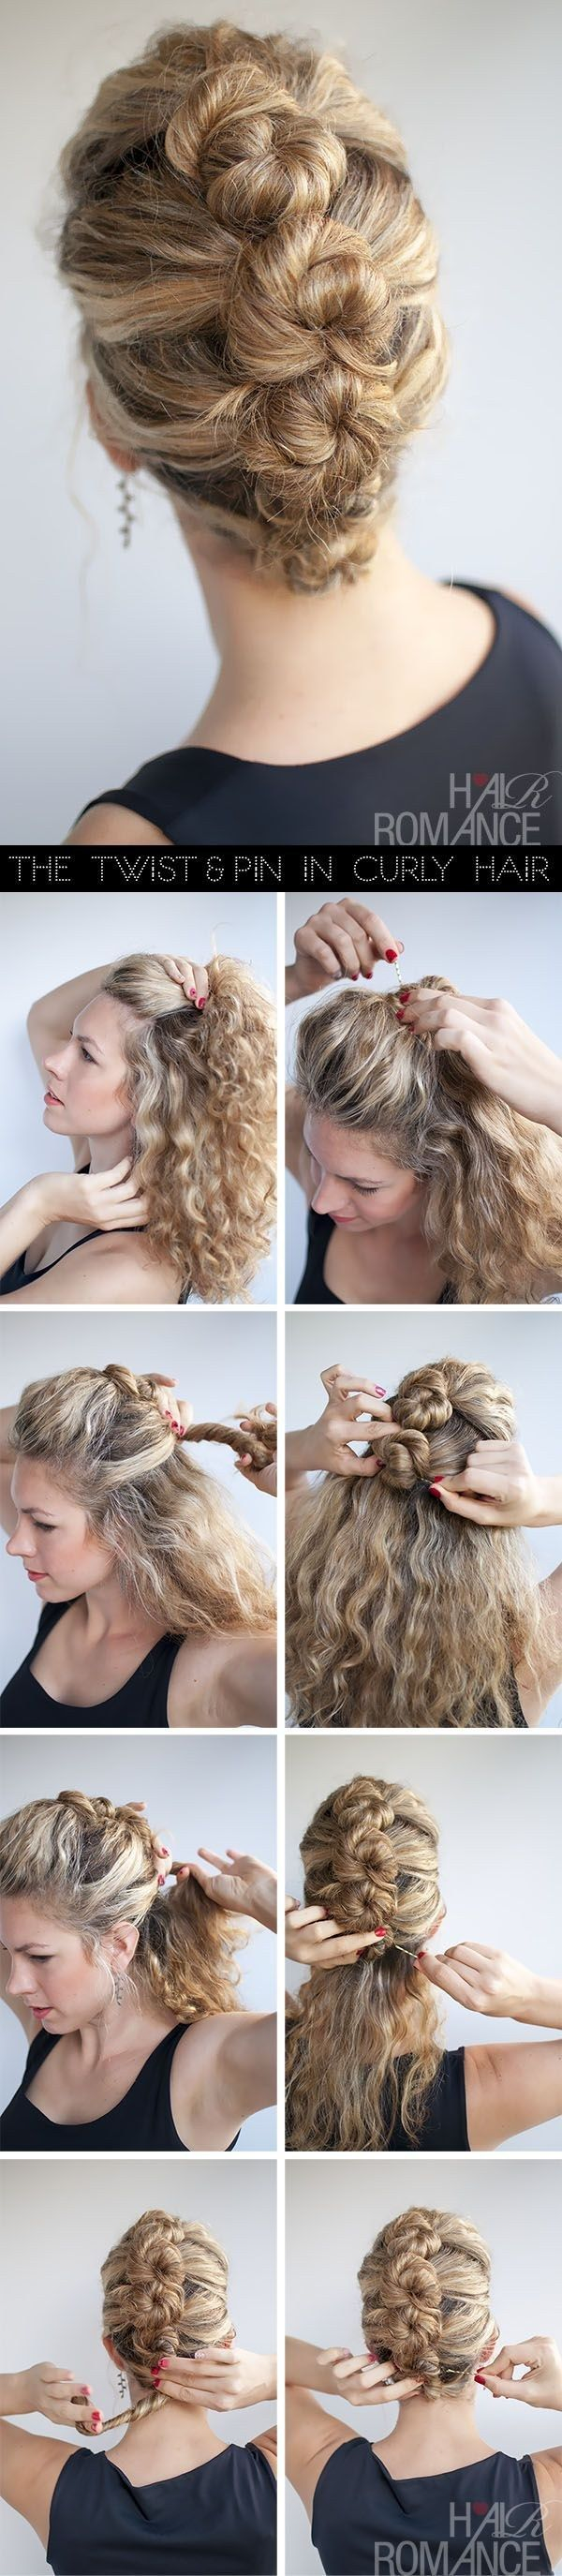 Admirable 1000 Images About How To Hair On Pinterest Your Hair Bobby Pin Short Hairstyles For Black Women Fulllsitofus